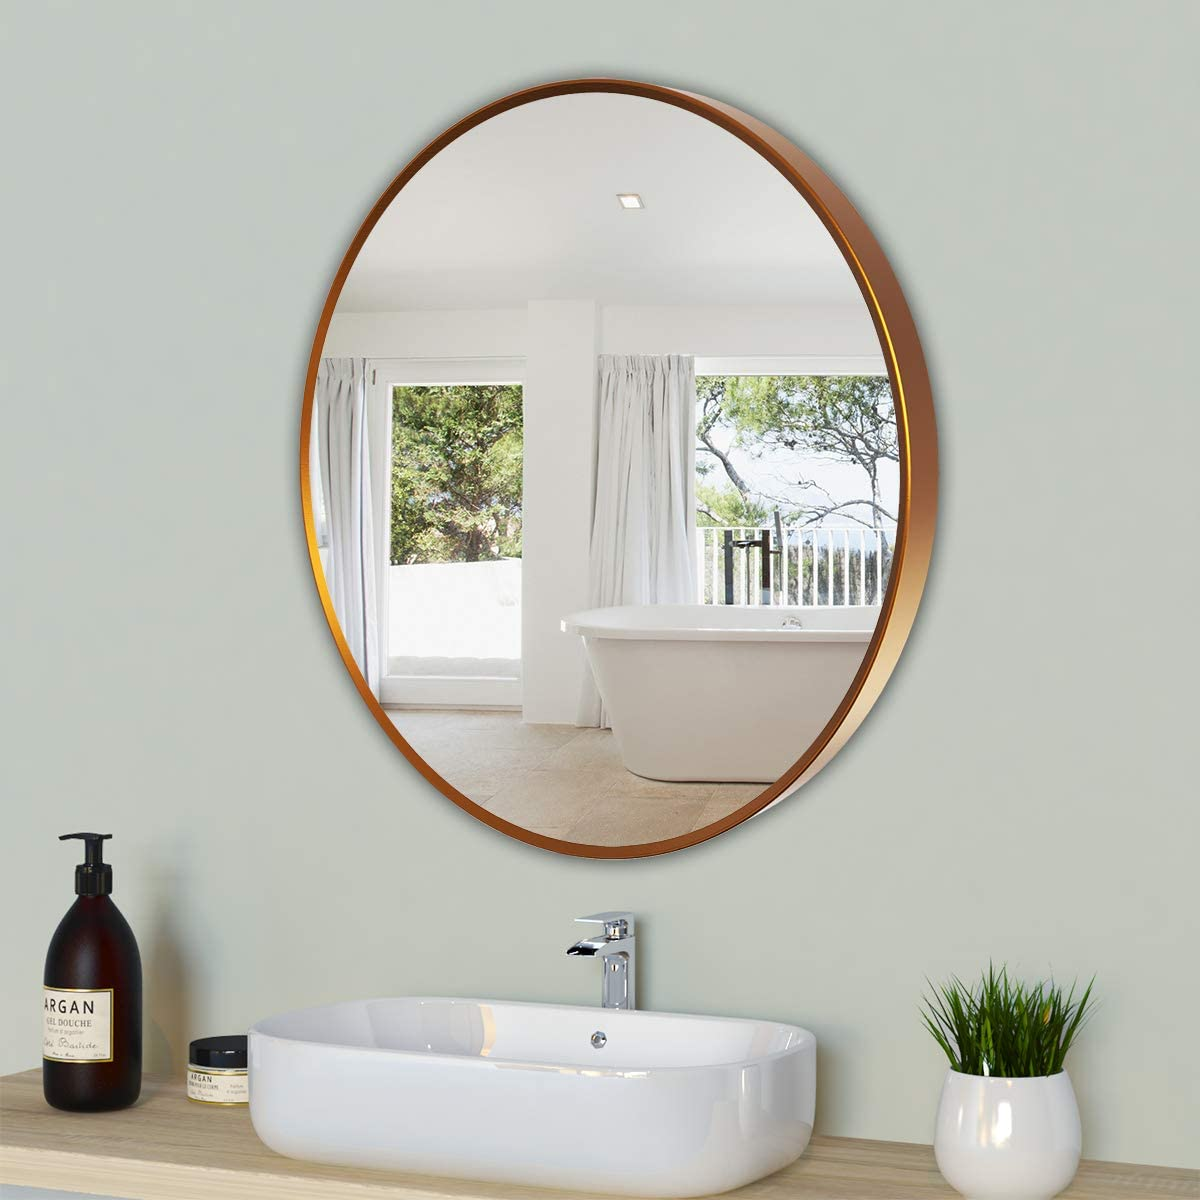 Deby Wall Mirror , Round Mirror with Brushed Metal Frame,24inch Copper Mirror,Rustic Mirror for Bathrooms Livingroom Hallway ,Circle Mirror,Home Decor